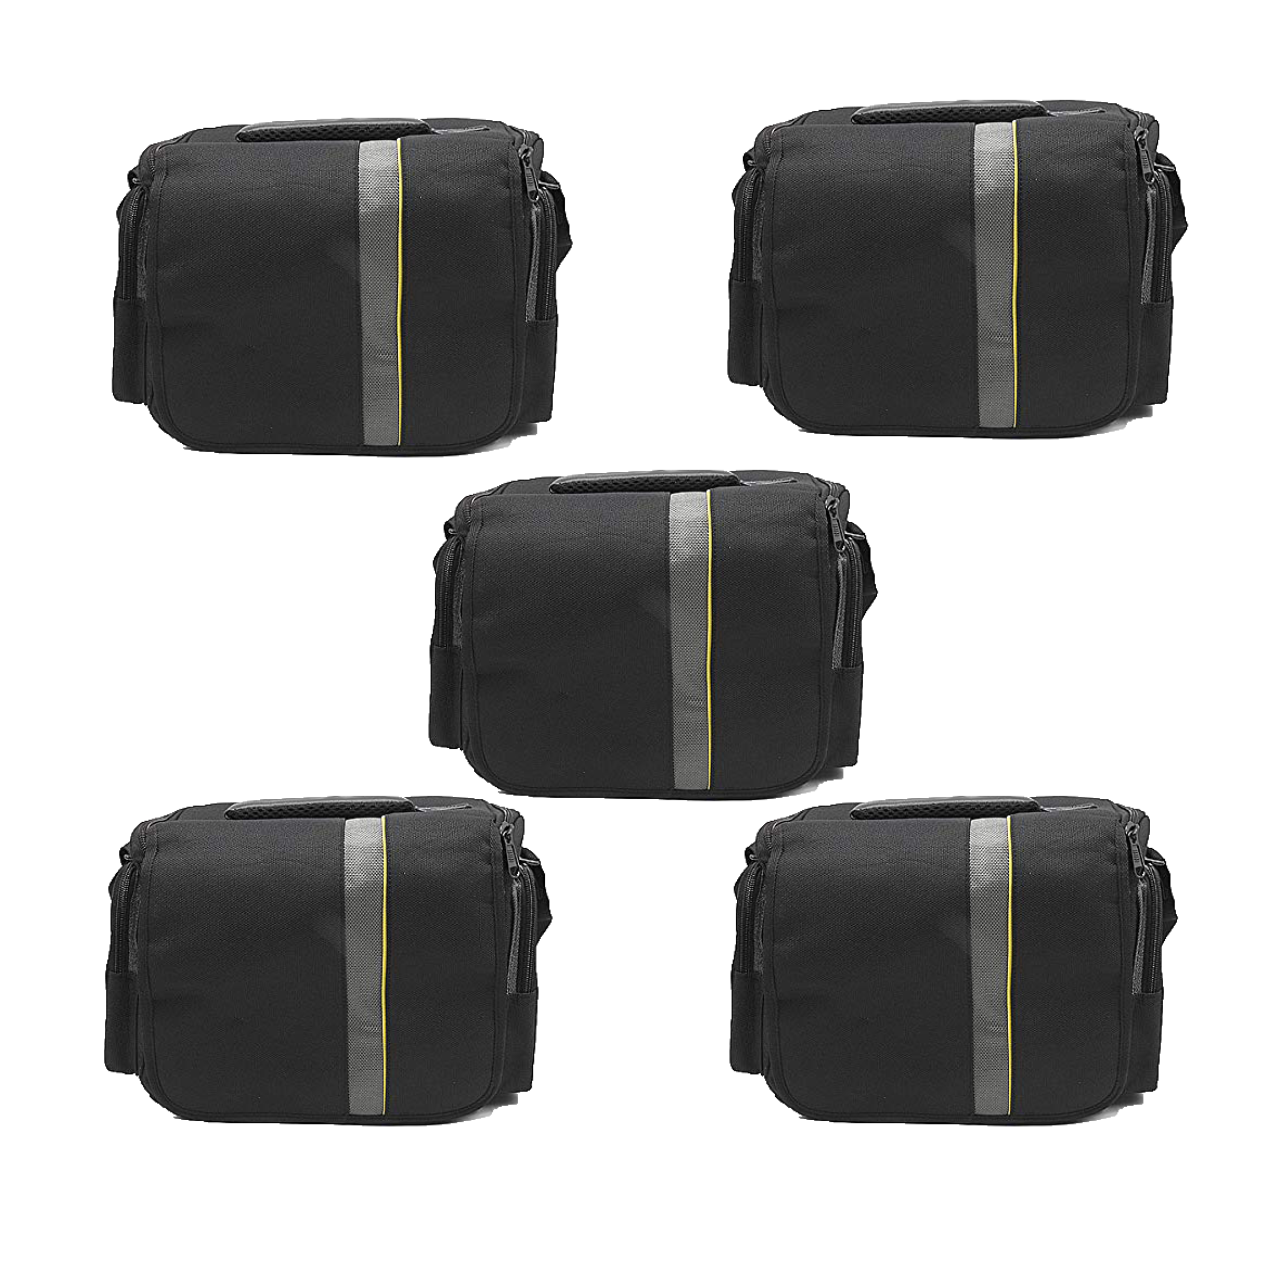 Waterproof Anti-Shock Dslr Camera Bag For Canon, Nikon, Samsung, And Sony Camera Bag -9004 Pack Of 5Pcs Camera Bags Camera Bags